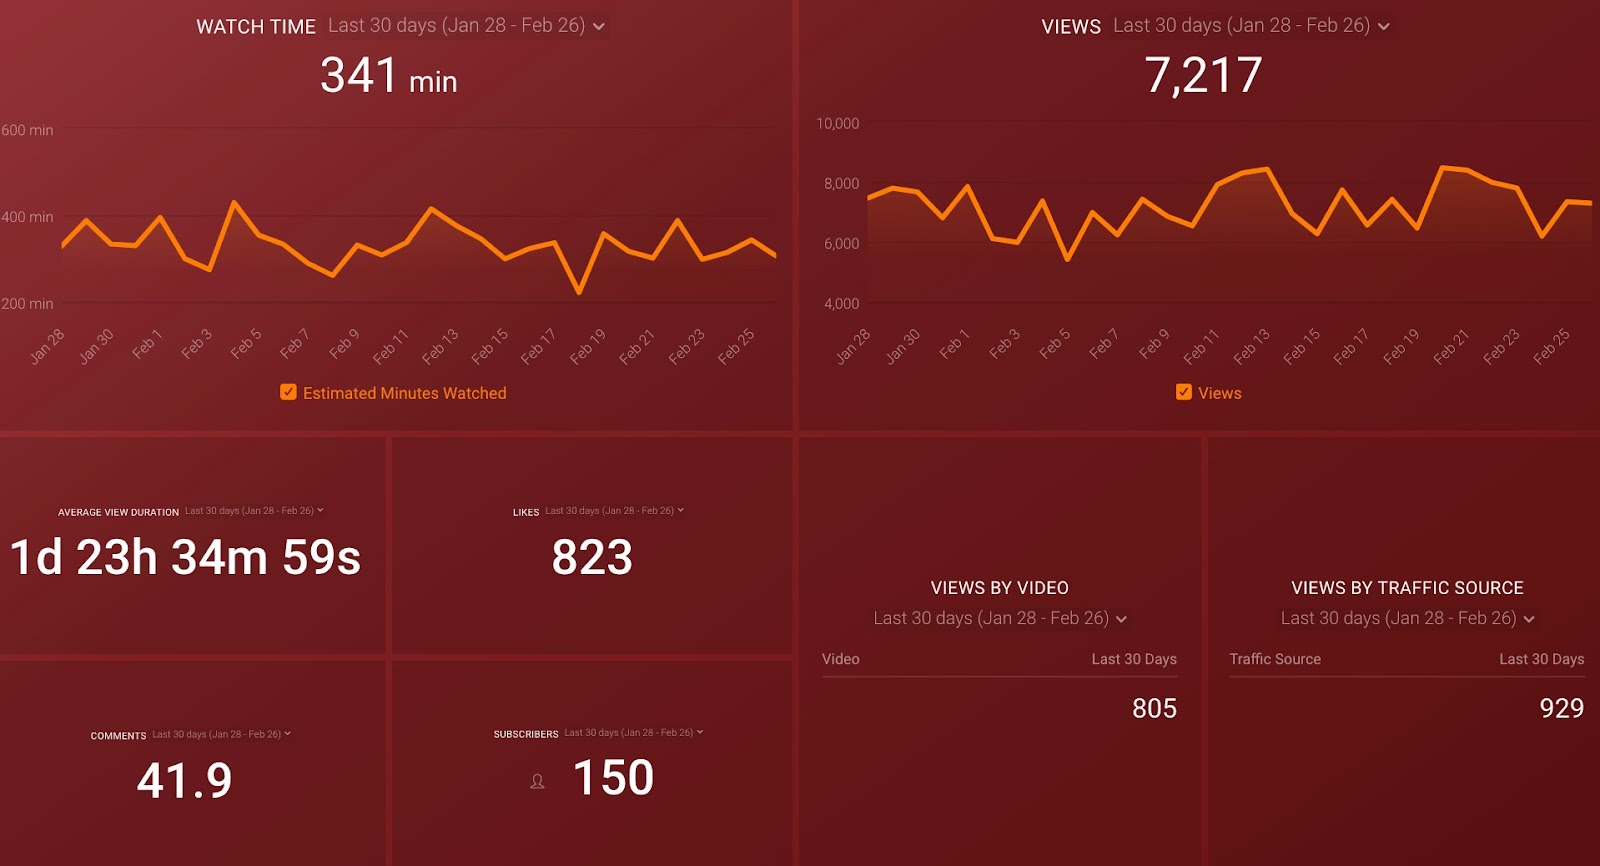 Youtube Overview Dashboard